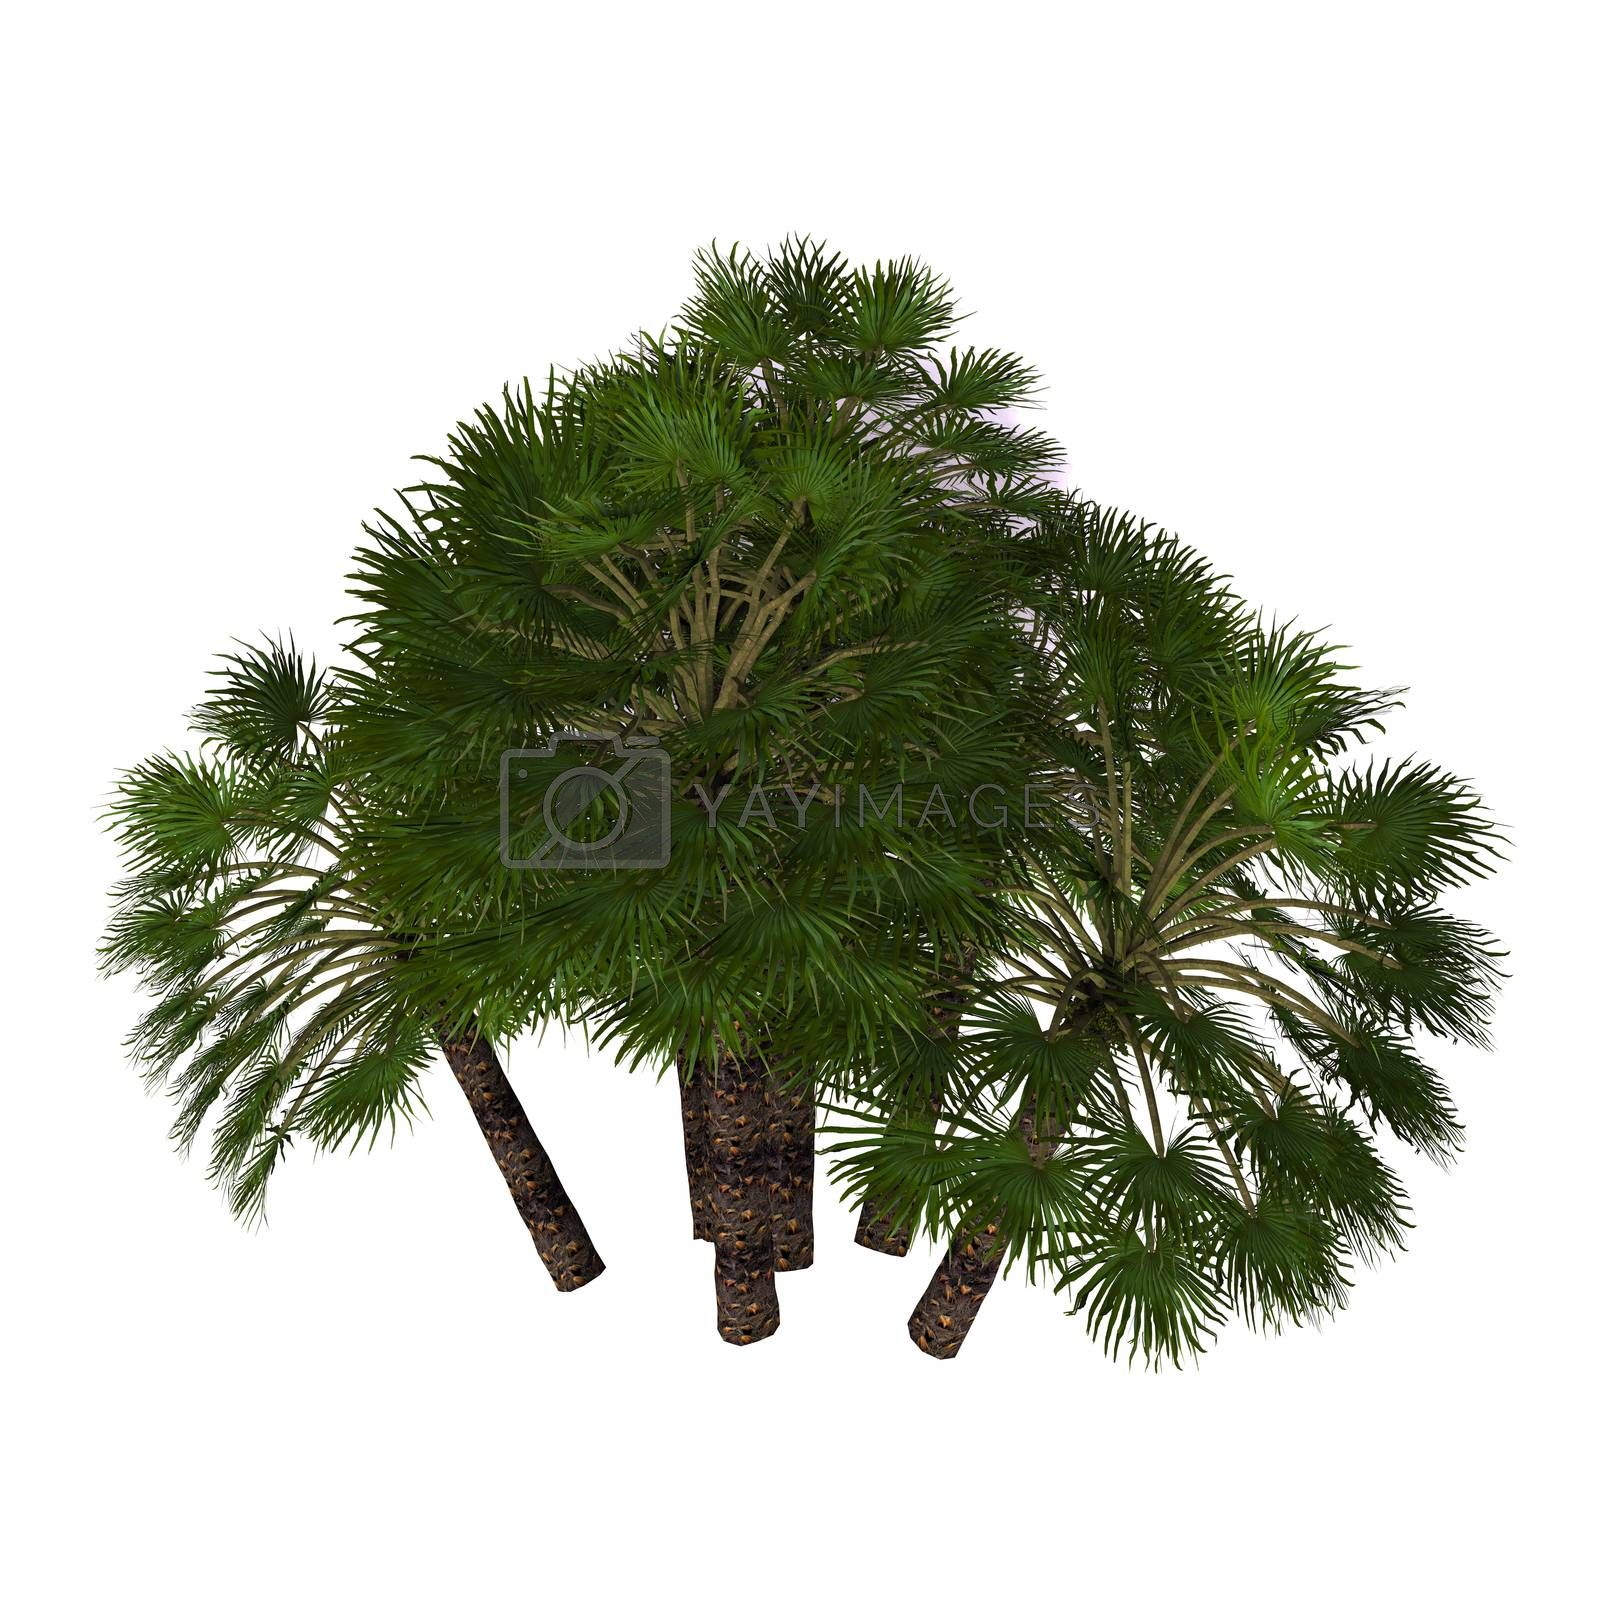 A native Mediterranean palm tree often found as a thick shrub and occasionally grows up to 7 meters.